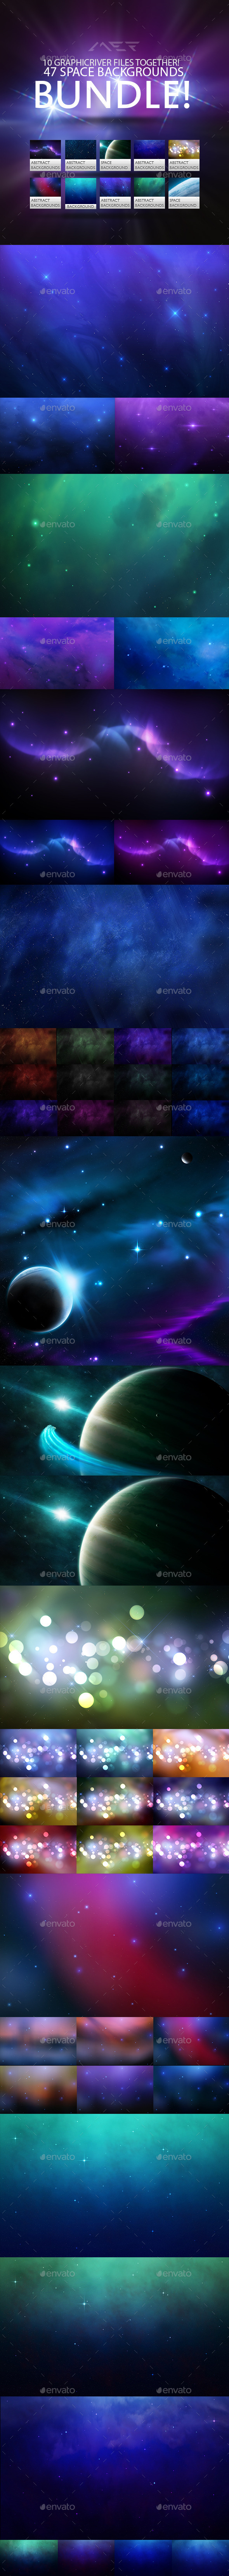 Space Backgrounds Mega Bundle - Abstract Backgrounds